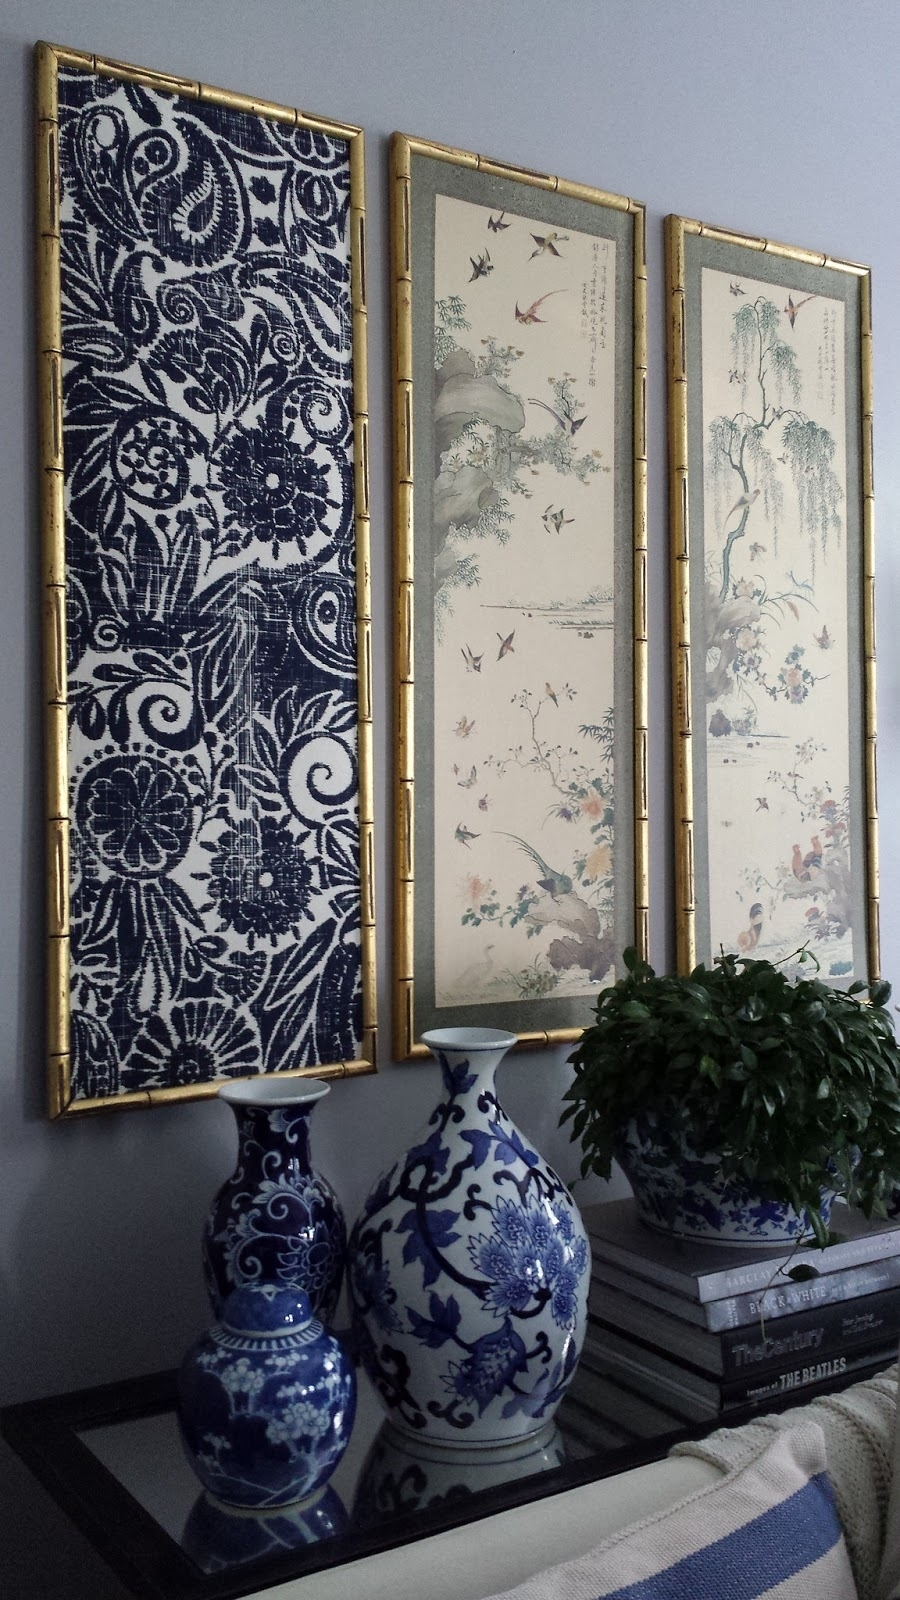 Focal Point Styling: Diy Indigo Wall Art With Framed Fabric Inside Latest Large Fabric Wall Art (Gallery 14 of 15)